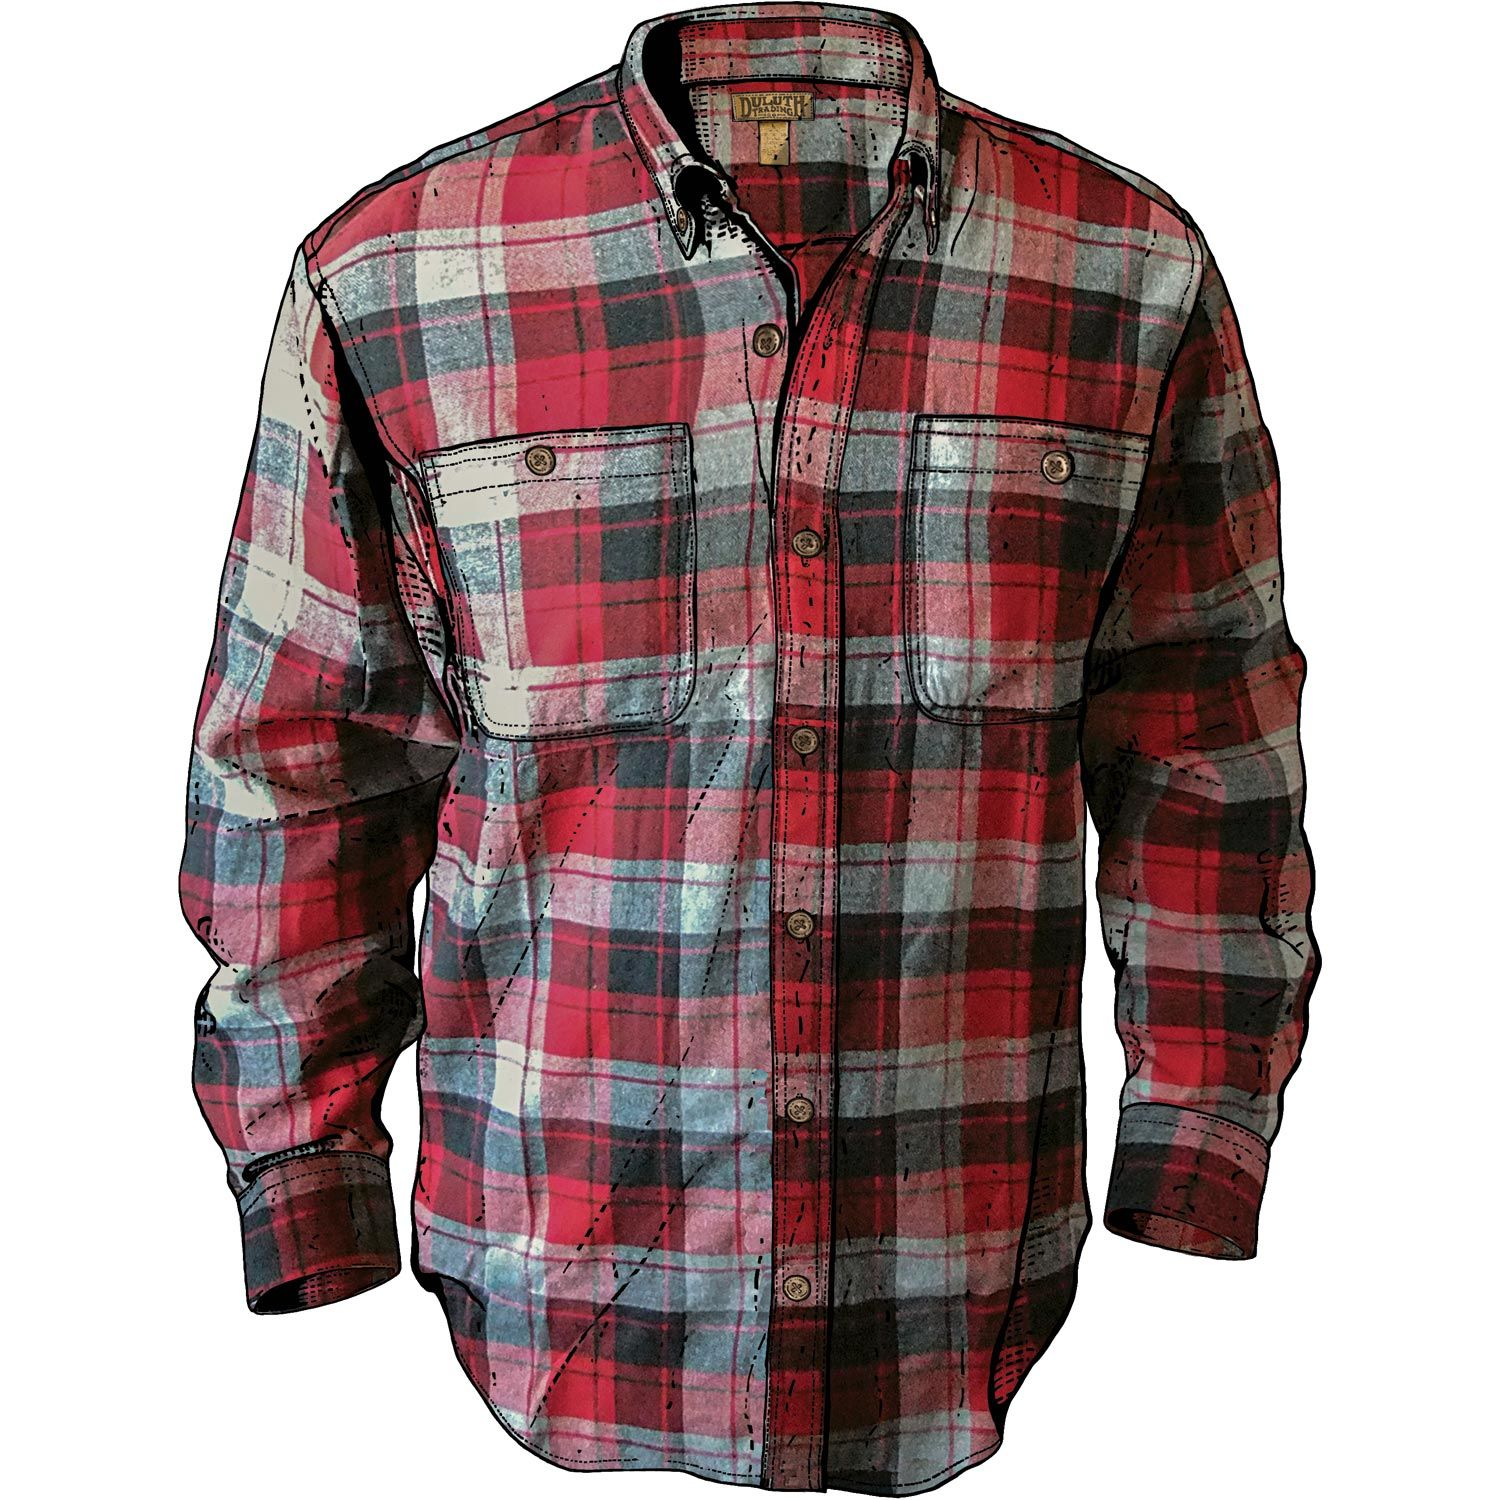 Men's Free Swingin' Trim Fit Flannel Shirt | Duluth Trading Company